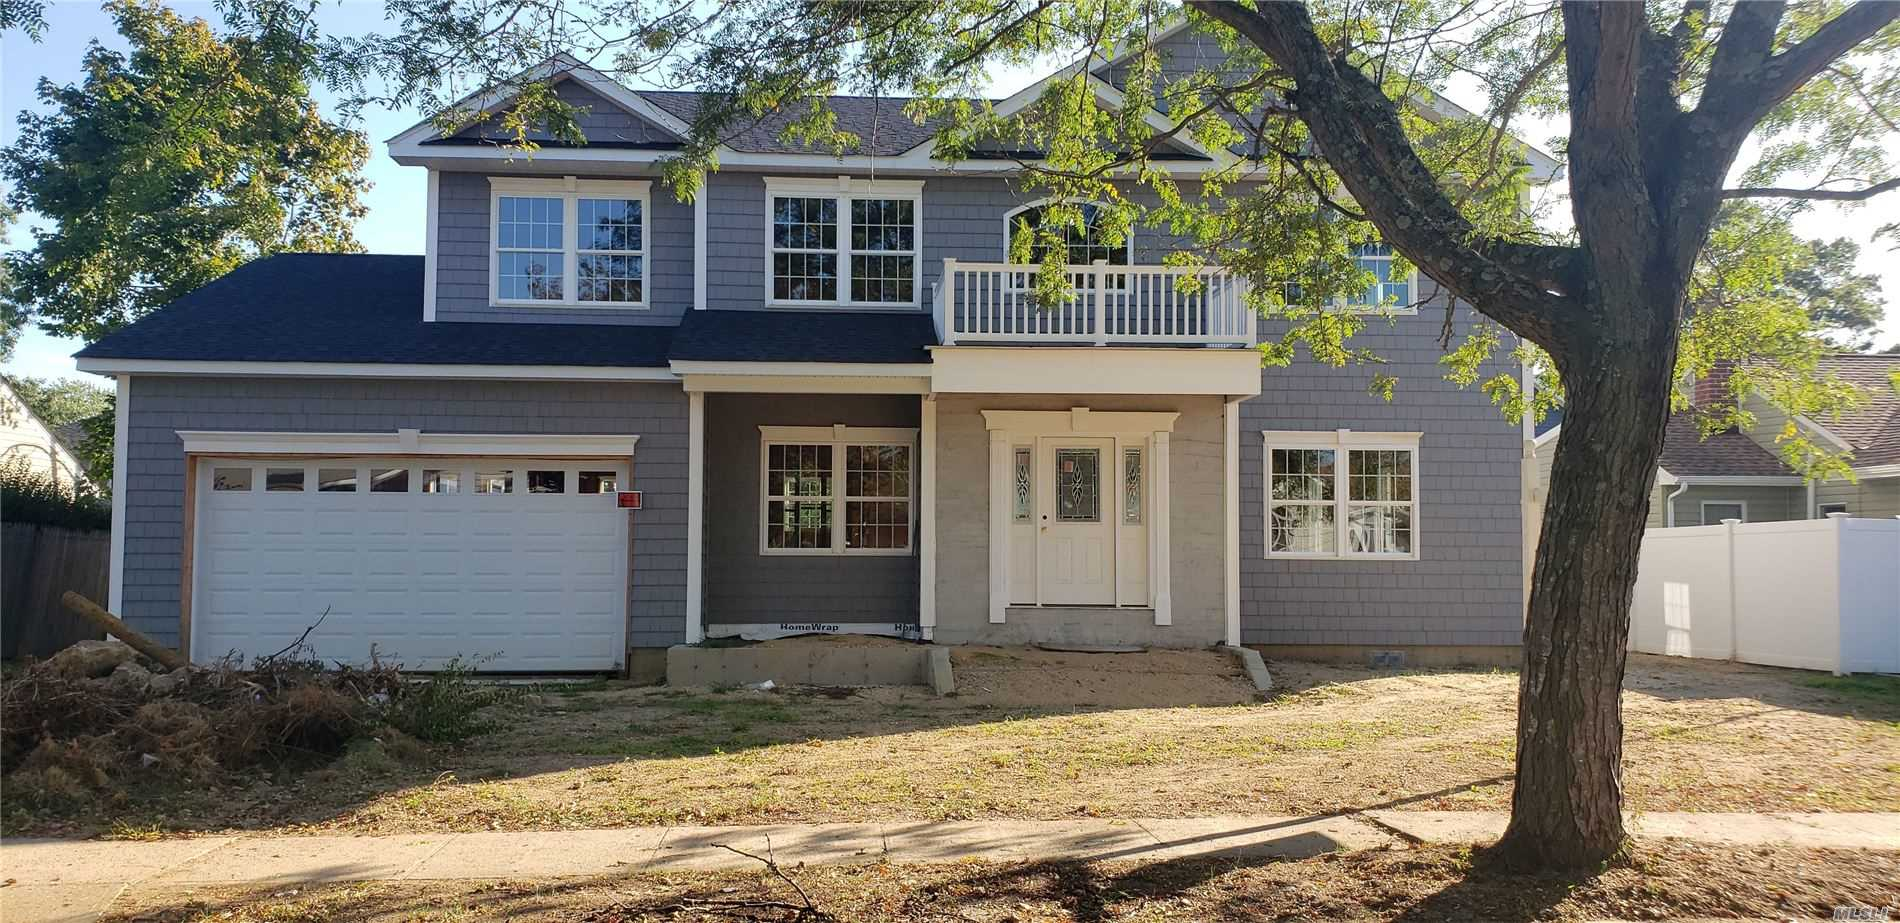 Oh Wow a Fabulous New Home can be Yours. This Grand Center Hall Colonial has it All with an Exception Open Floor Plan. Models Available for Workmanship! This CH Colonial Features: 2 Story EH, Fdr, Sitting Rm, Entertainment Rm w/Fplc, Custom Designed EIK w/CI, Granite Counters, 9ft Ceilings on 1st Flr,  A Awesome Master En Suite w/WIC & Designer Bath, 2nd Flr Laundry, 2 Zone Cac, Gleaming Hwflrs, Beautiful Mill Work, 2 Car Garage and a Great Backyard Setting...Make this Your Dream Home!